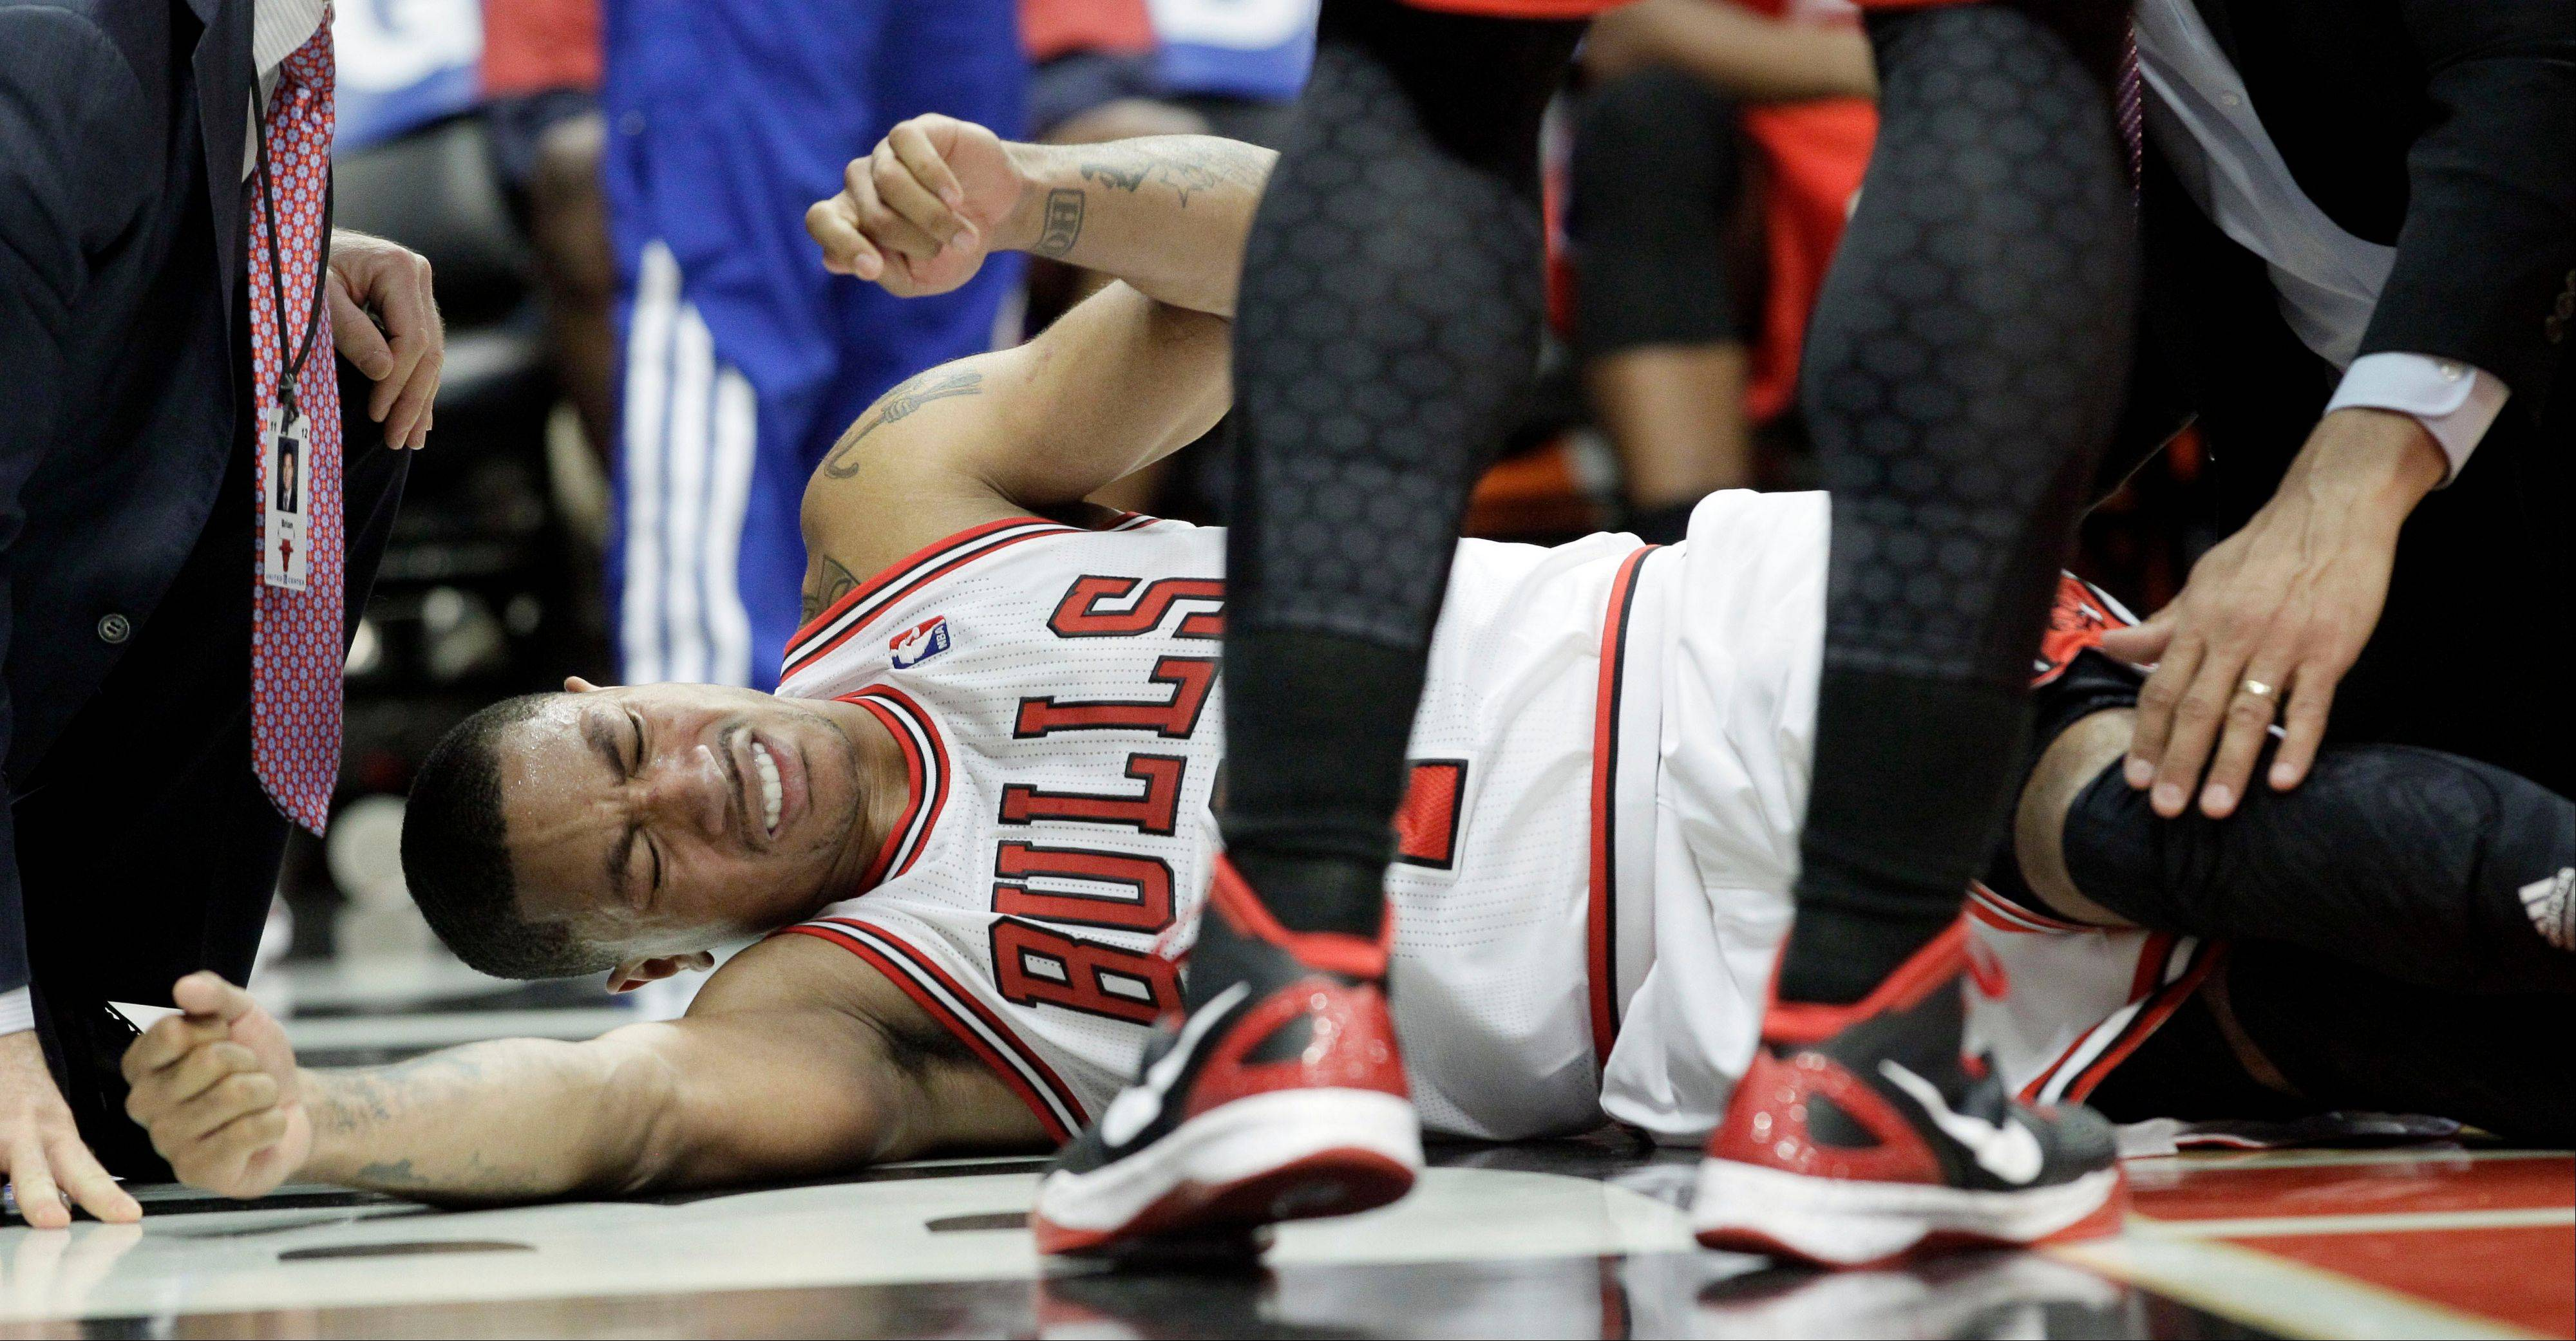 In this April 28, 2012, file photo, Bulls guard Derrick Rose reacts after an injury during the fourth quarter of †Game 1 in the first round of the NBA basketball playoffs against the Philadelphia 76ers, in Chicago. Rose is out for the season. The team said Monday, Nov. 25, 2013, that Rose had successful surgery to repair a torn medial meniscus in his right knee. Rose was hurt Friday night, Nov. 22, 2013, at Portland.